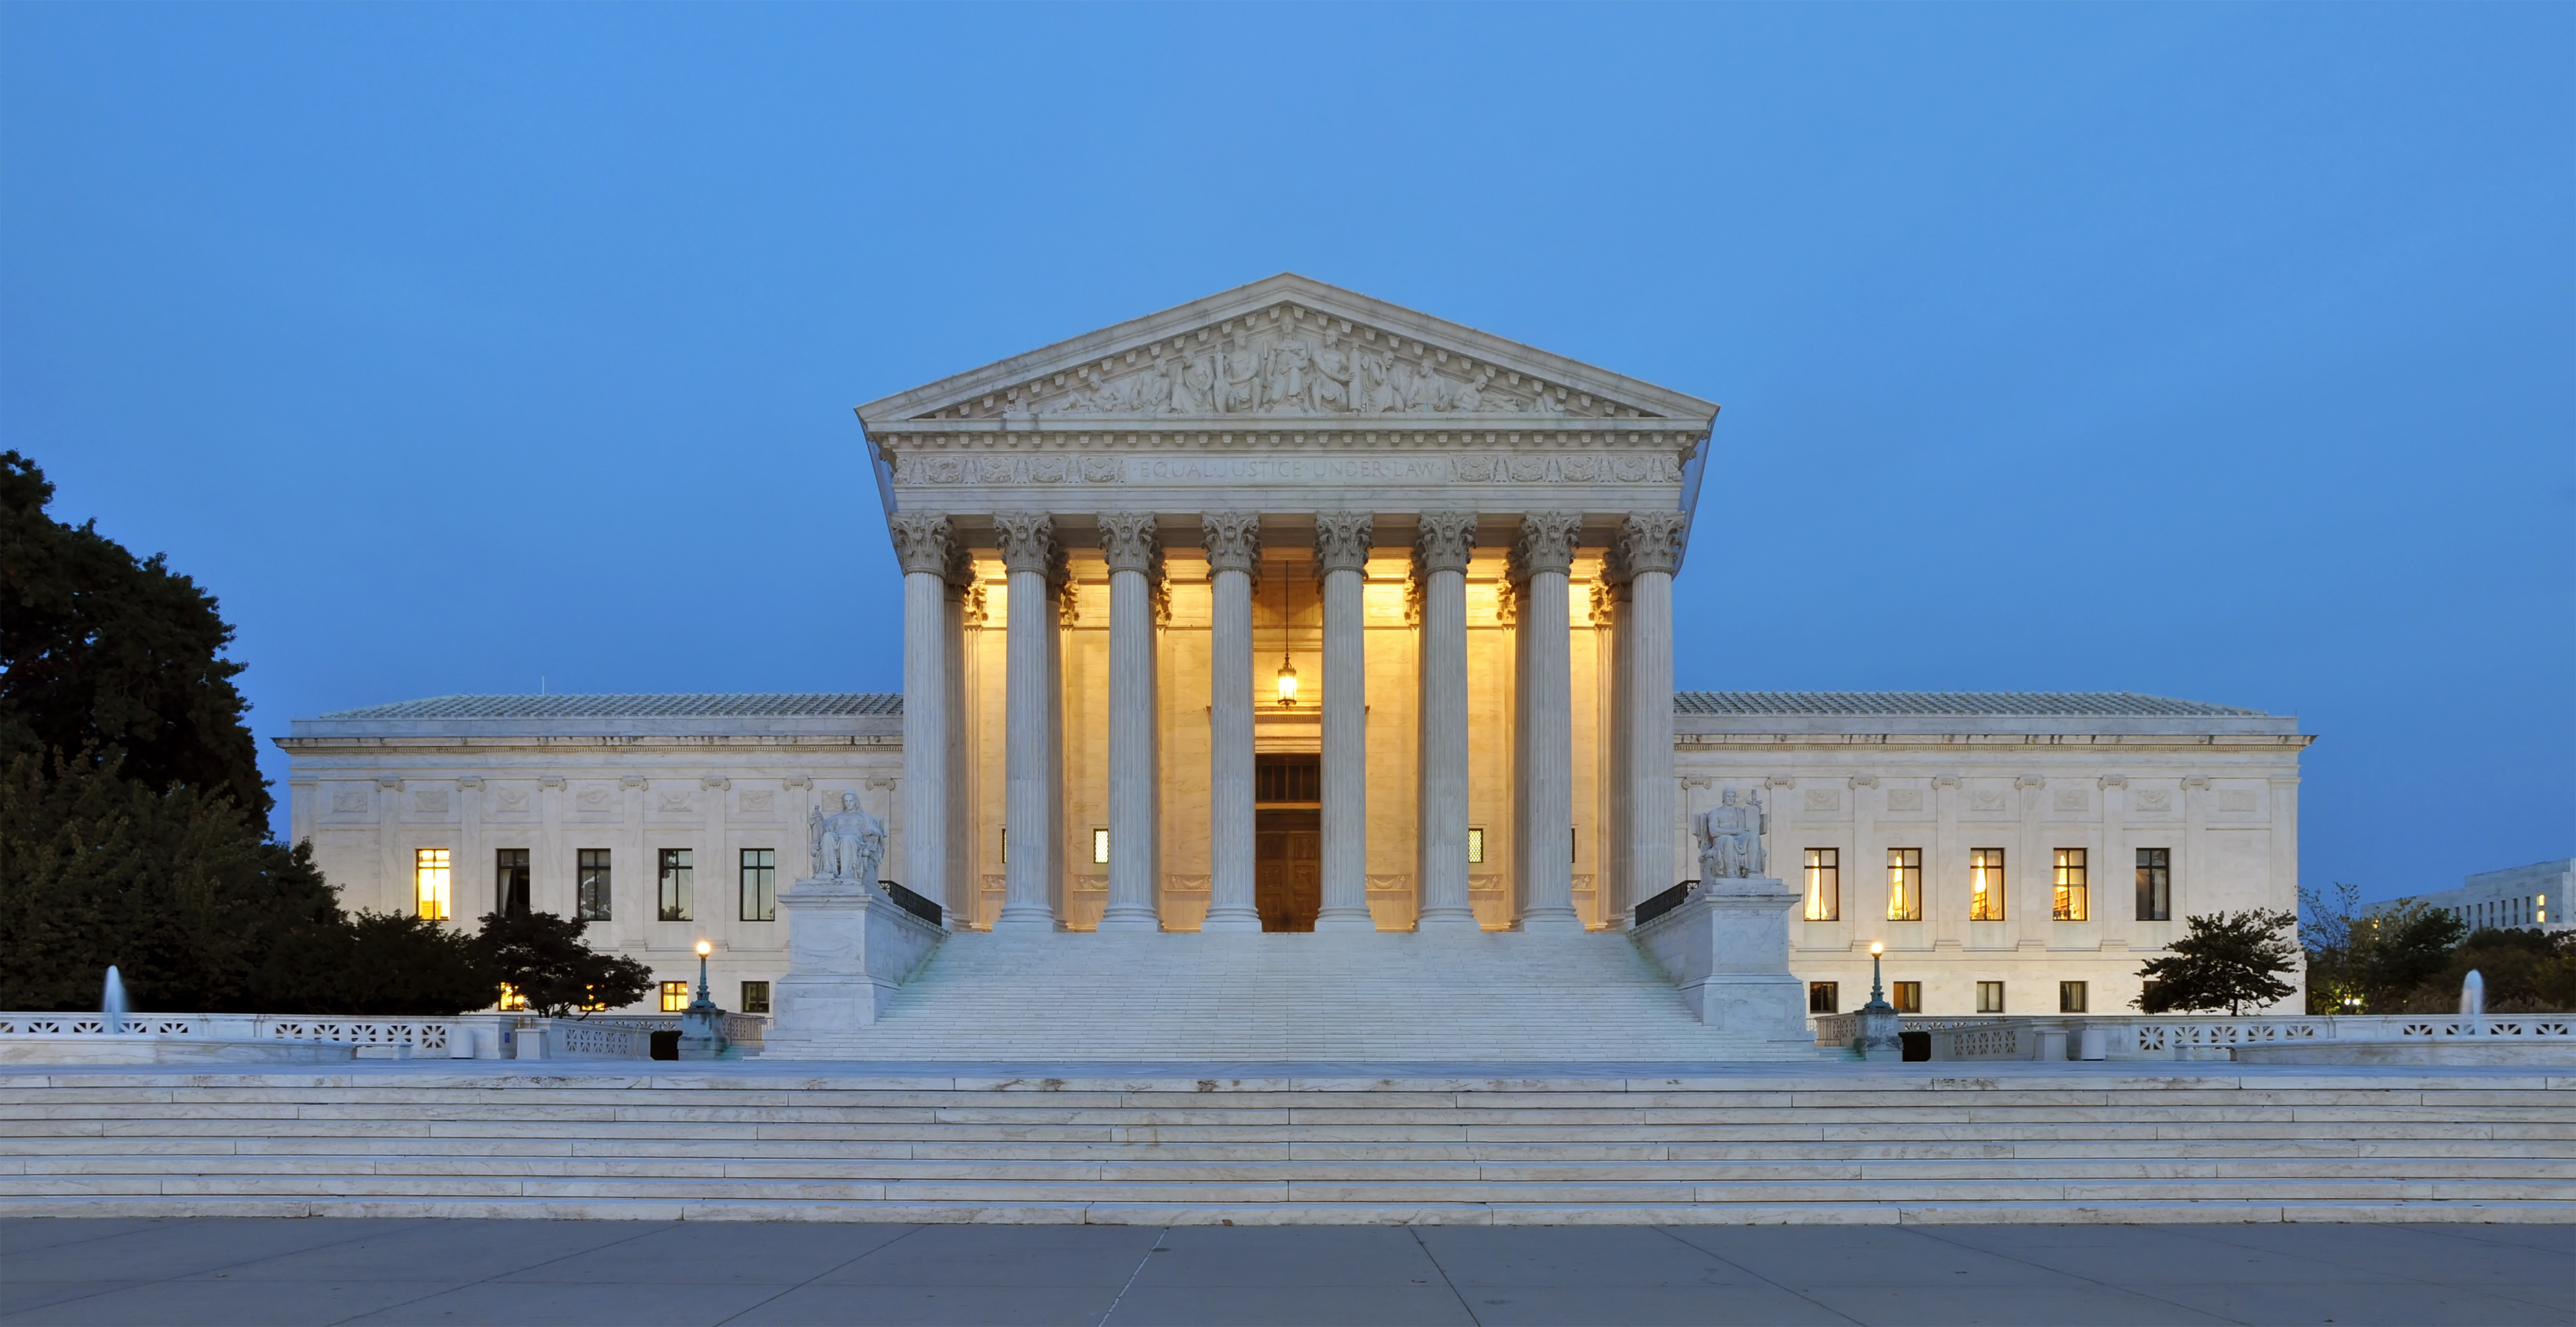 File:Panorama of United States Supreme Court Building at Dusk.jpg - Wikimedia Commons